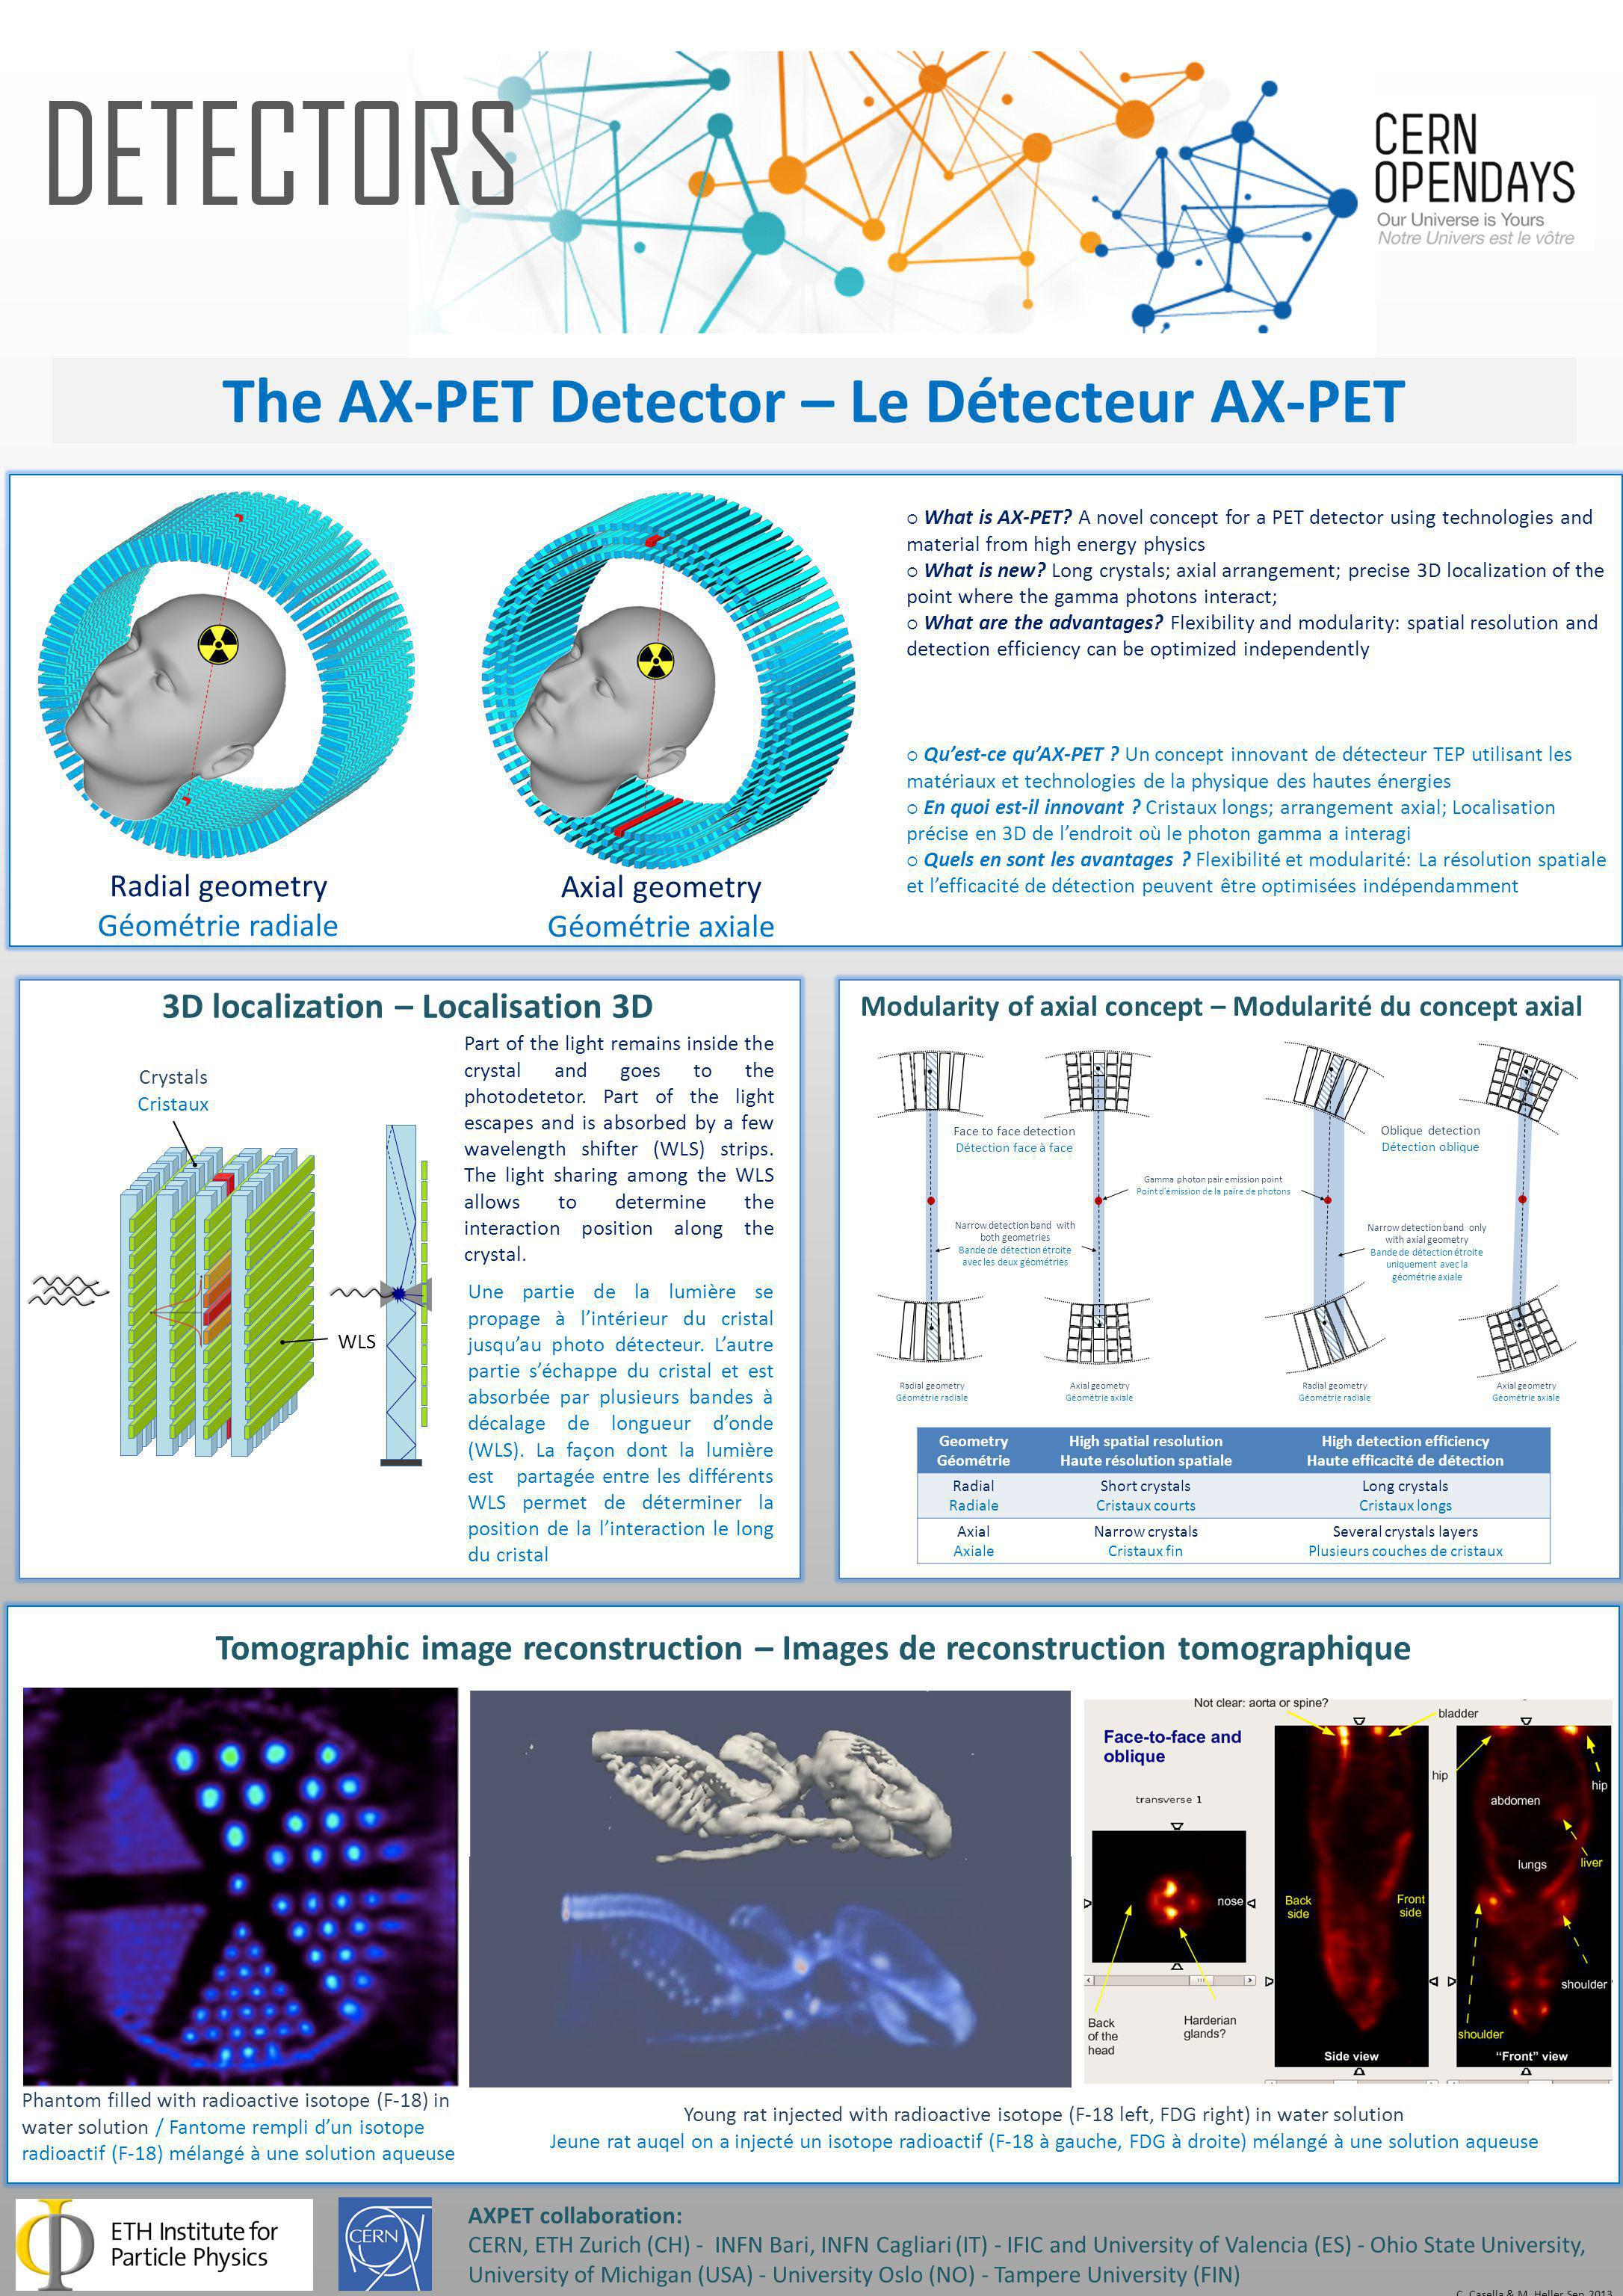 DETECTORS The AX-PET Detector – Le Détecteur AX-PET AXPET collaboration: CERN, ETH Zurich (CH) - INFN Bari, INFN Cagliari (IT) - IFIC and University of Valencia (ES) - Ohio State University, University of Michigan (USA) - University Oslo (NO) - Tampere University (FIN) What is AX-PET.